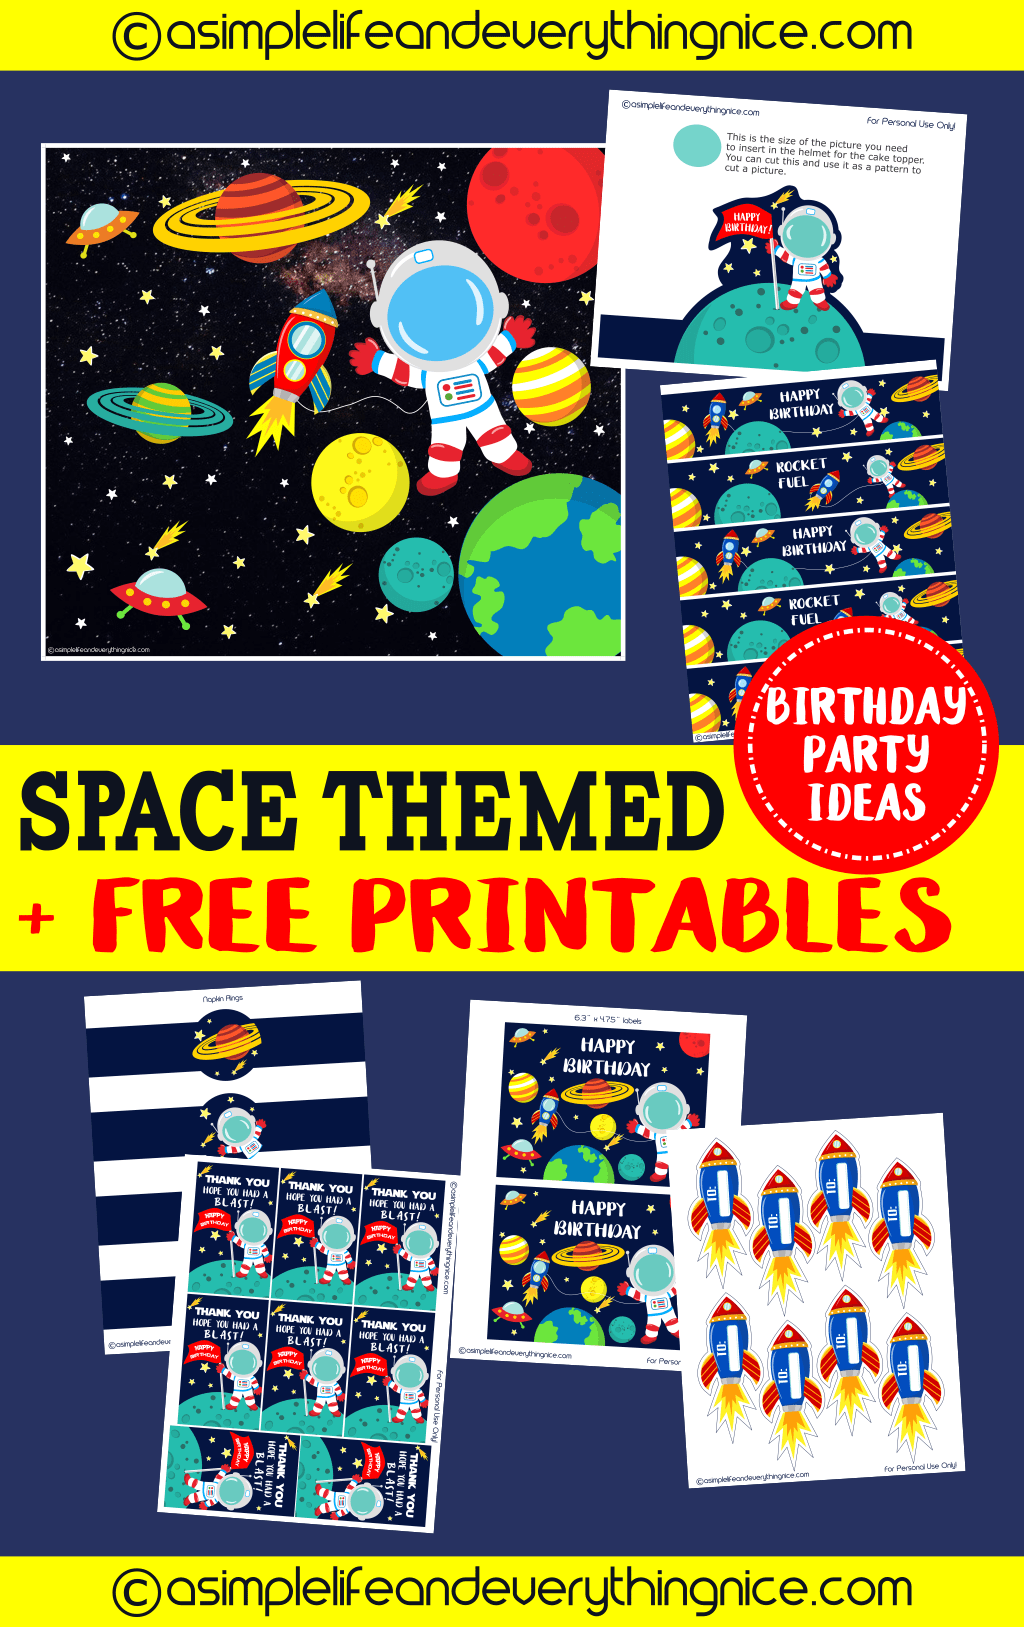 A Space Themed Birthday Party : Matthew's Outer Space 8th Birthday Party with Free Printables - A Simple Life and Everything Nice